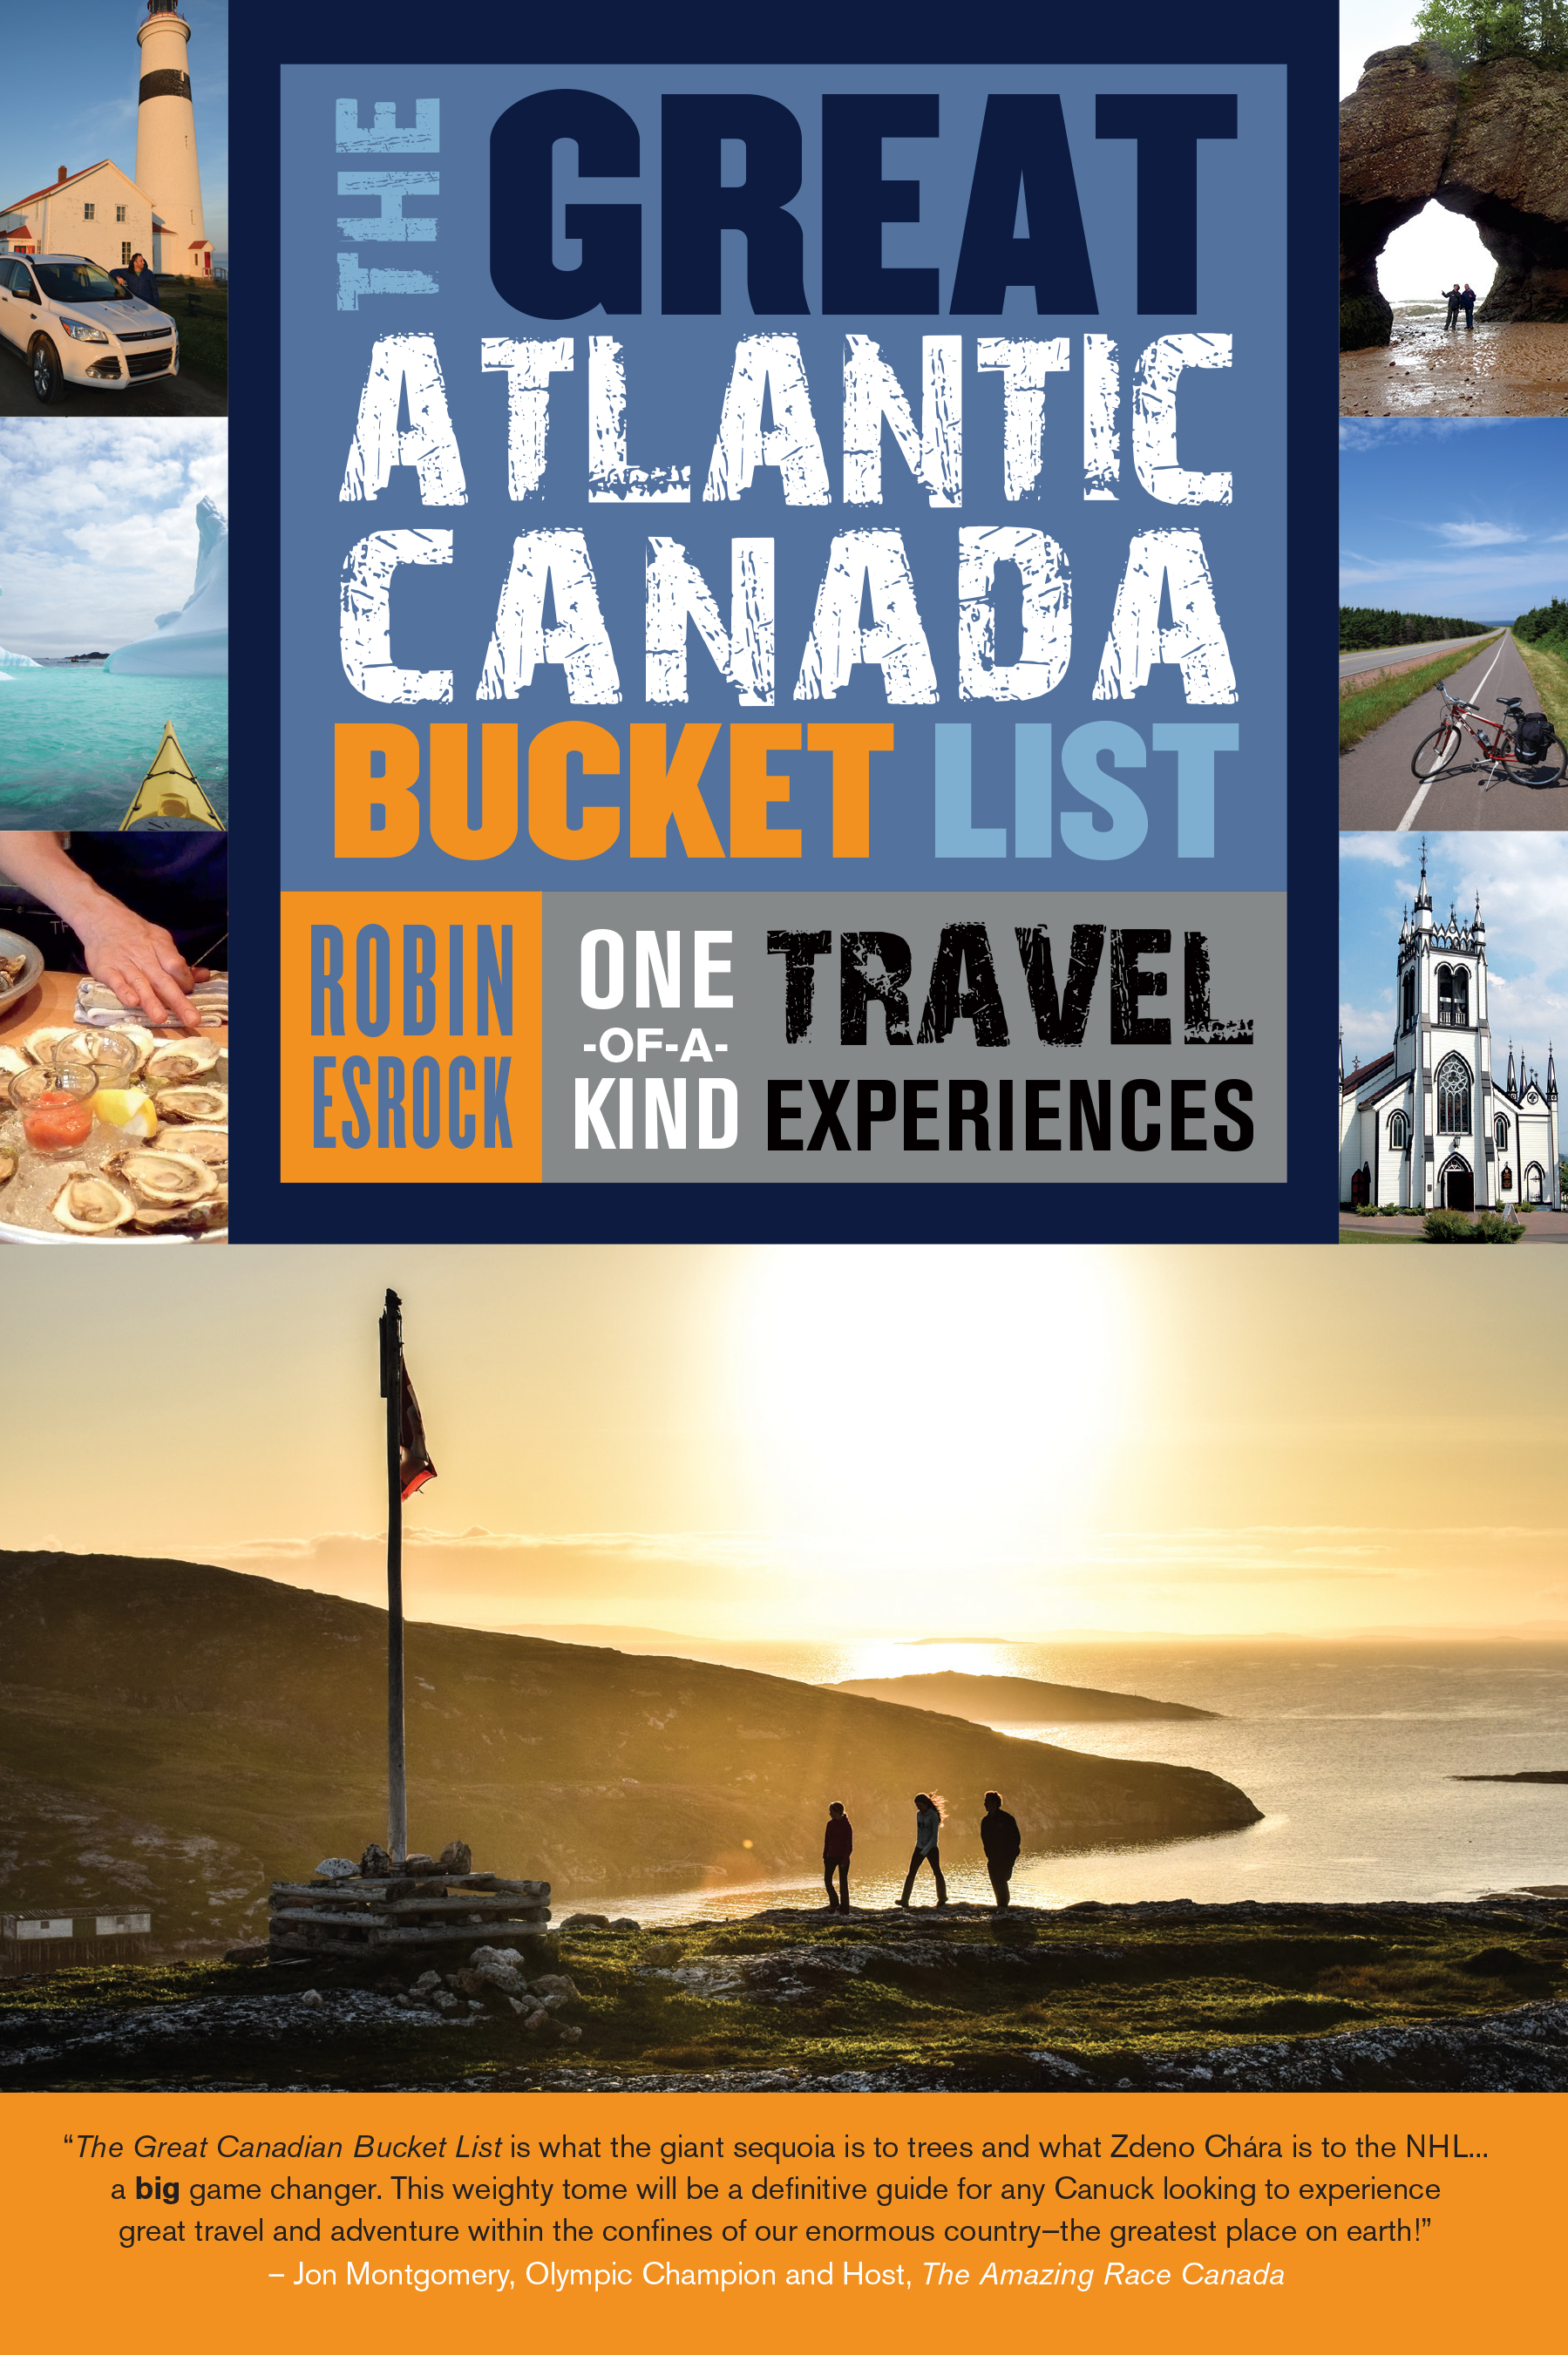 The Great Atlantic Canada Bucket List : One-of-a-Kind Travel Experiences | Dictionary & Encyclopedia